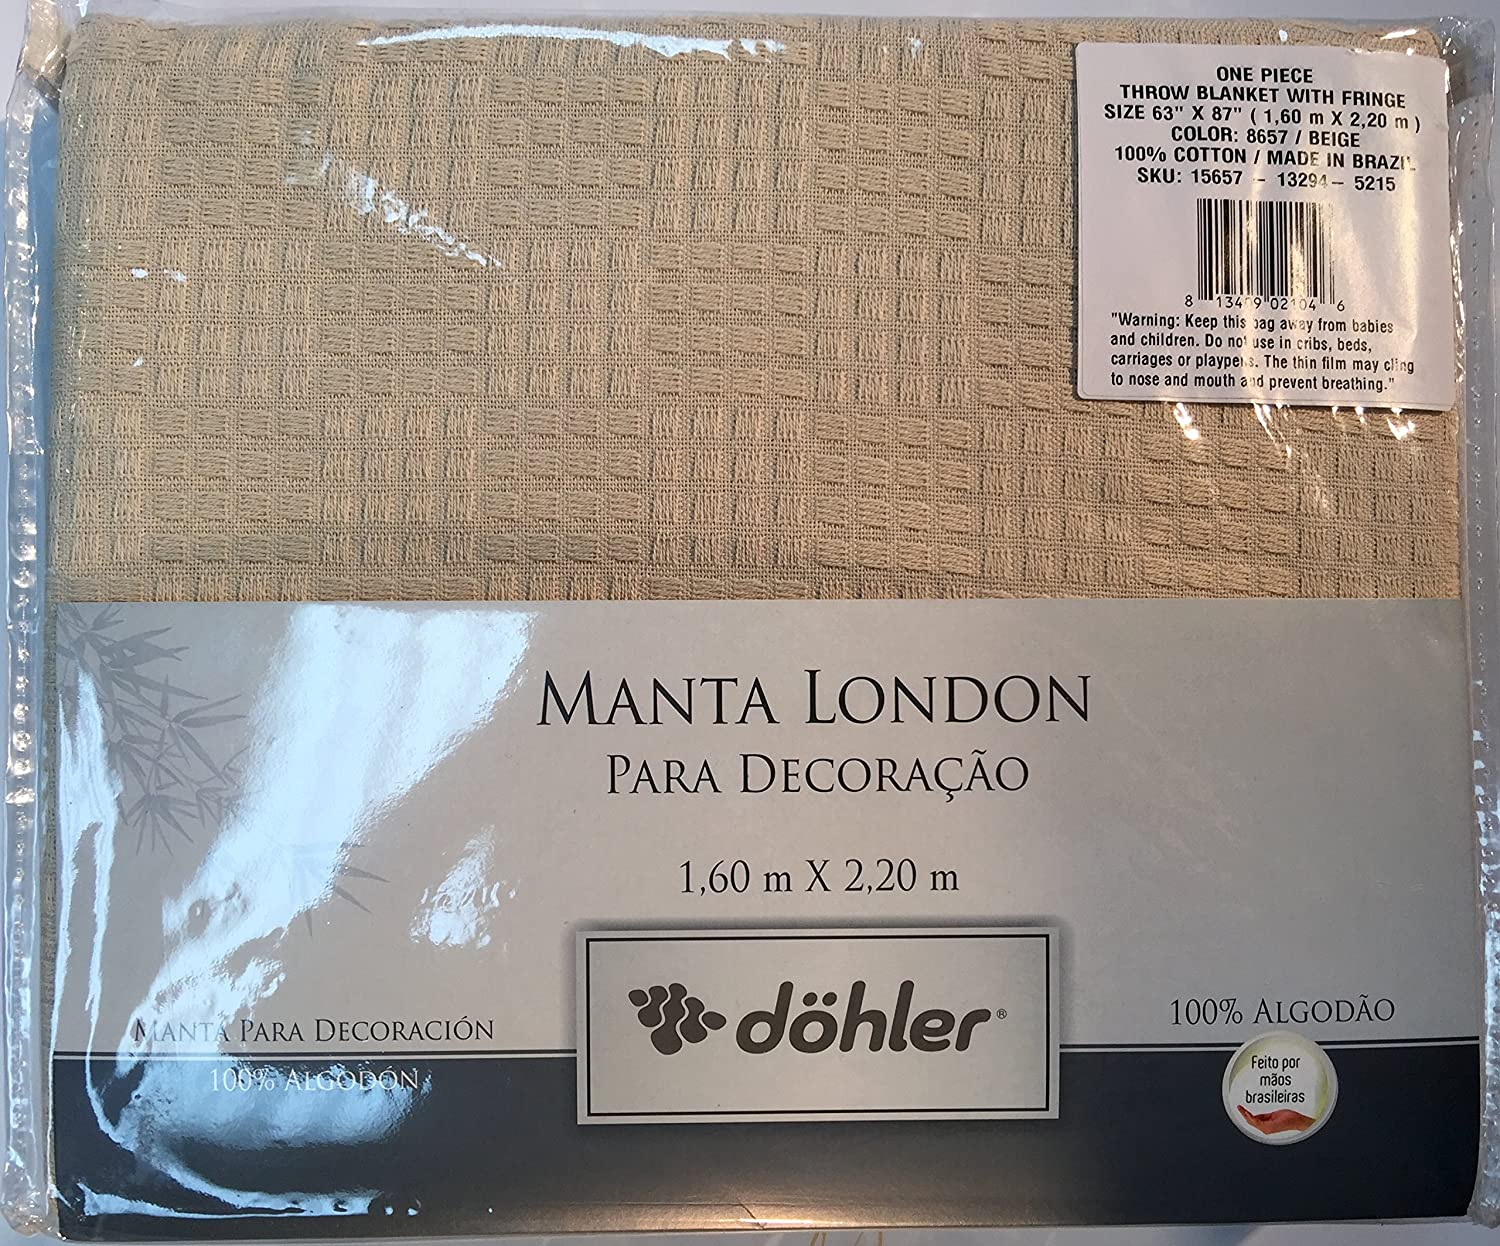 Dohler Beige Brazilian Cotton London Throw Blanket With Fringe 63x87 Inches 8657